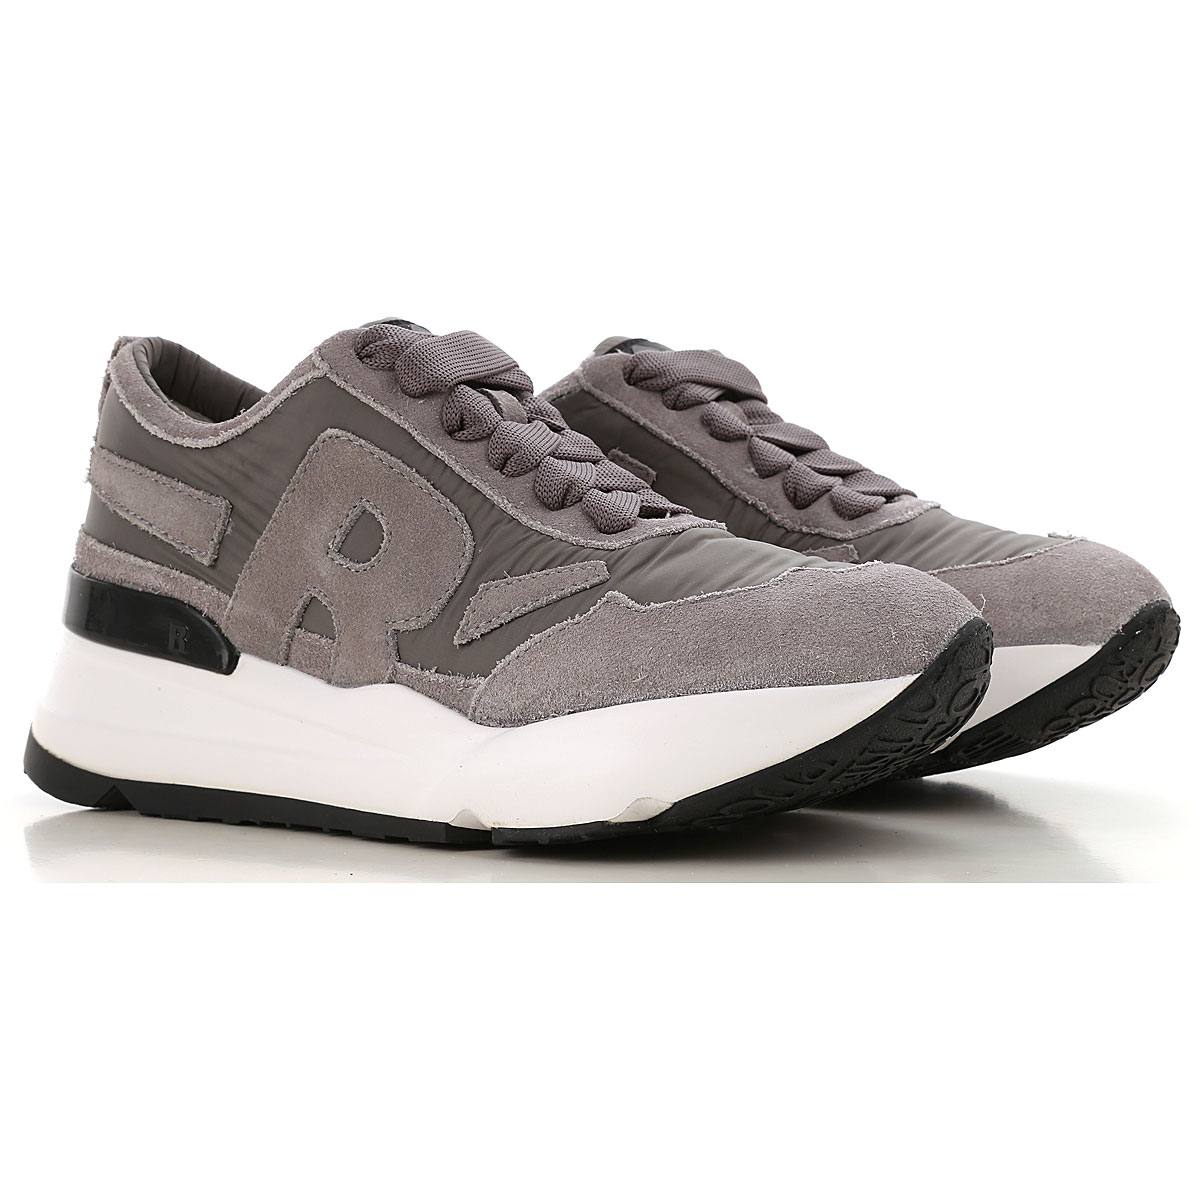 Image of Ruco Line Sneakers for Women, Grey, Nylon, 2017, 6 7 8 9